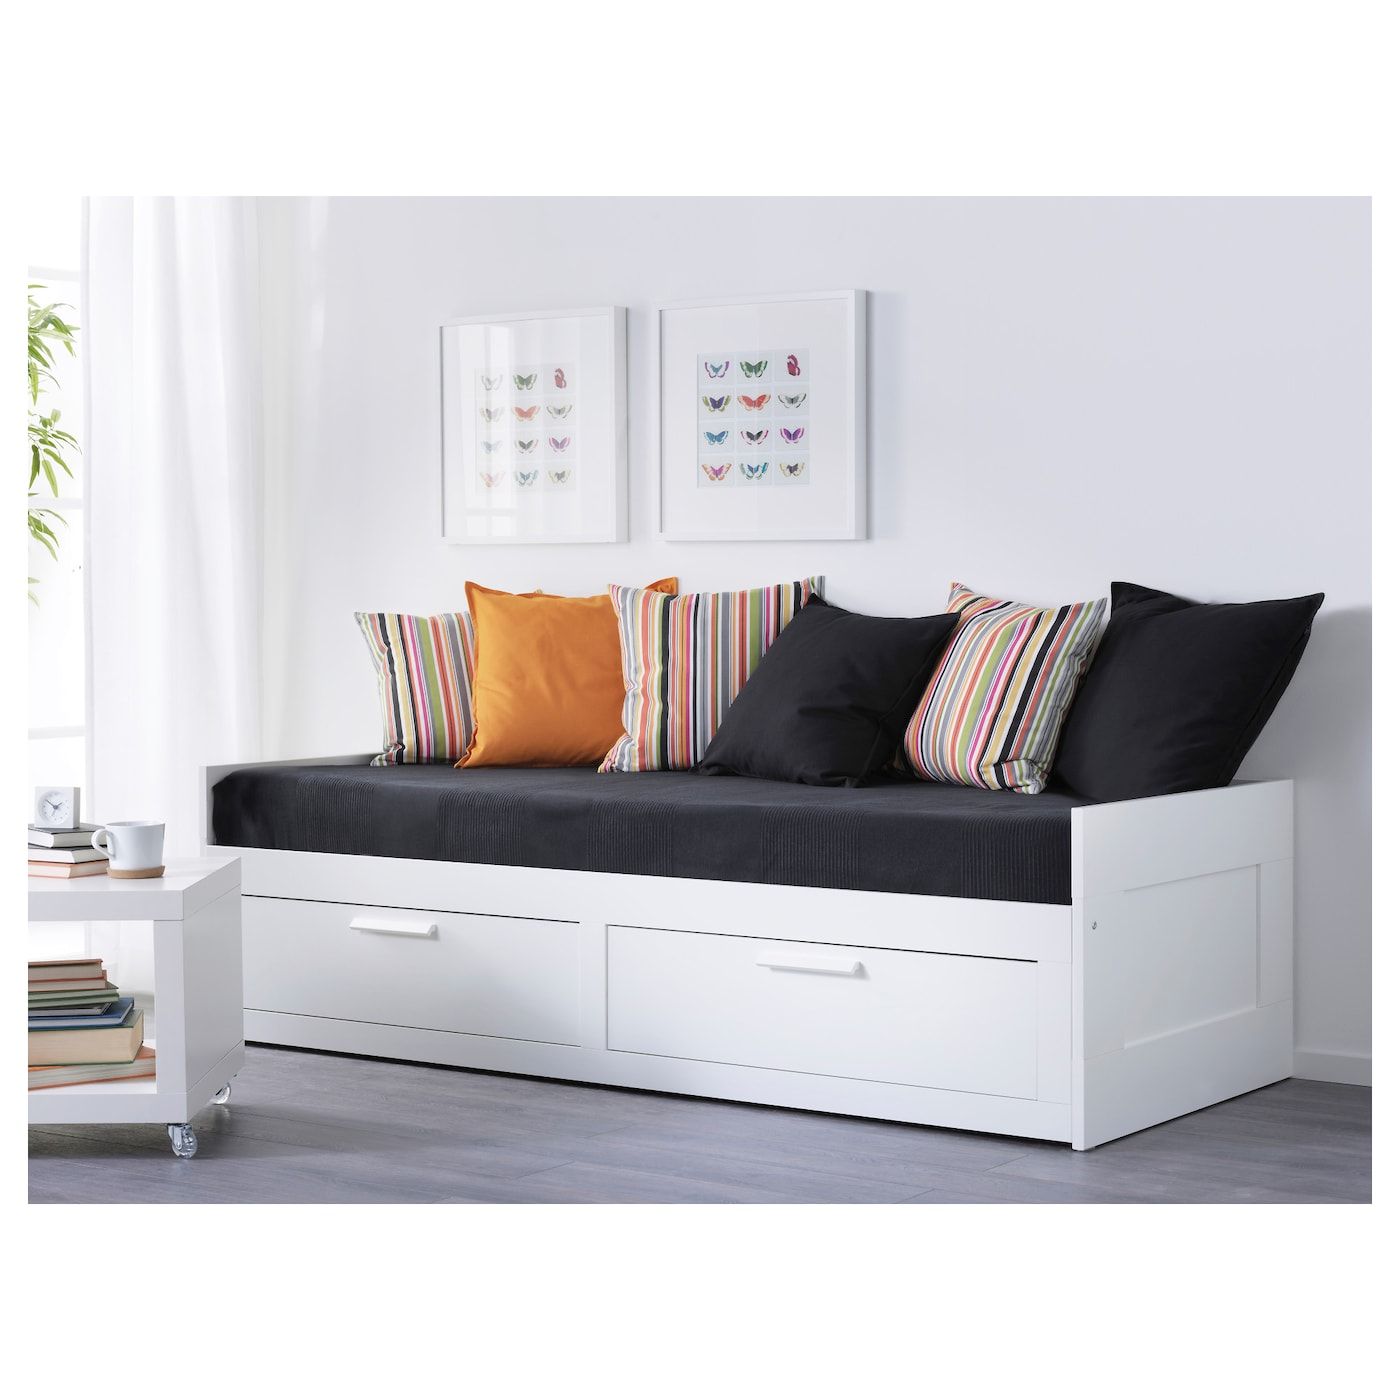 BRIMNES Day bed w 2 drawers 2 mattresses White moshult firm 80×200 cm IKEA